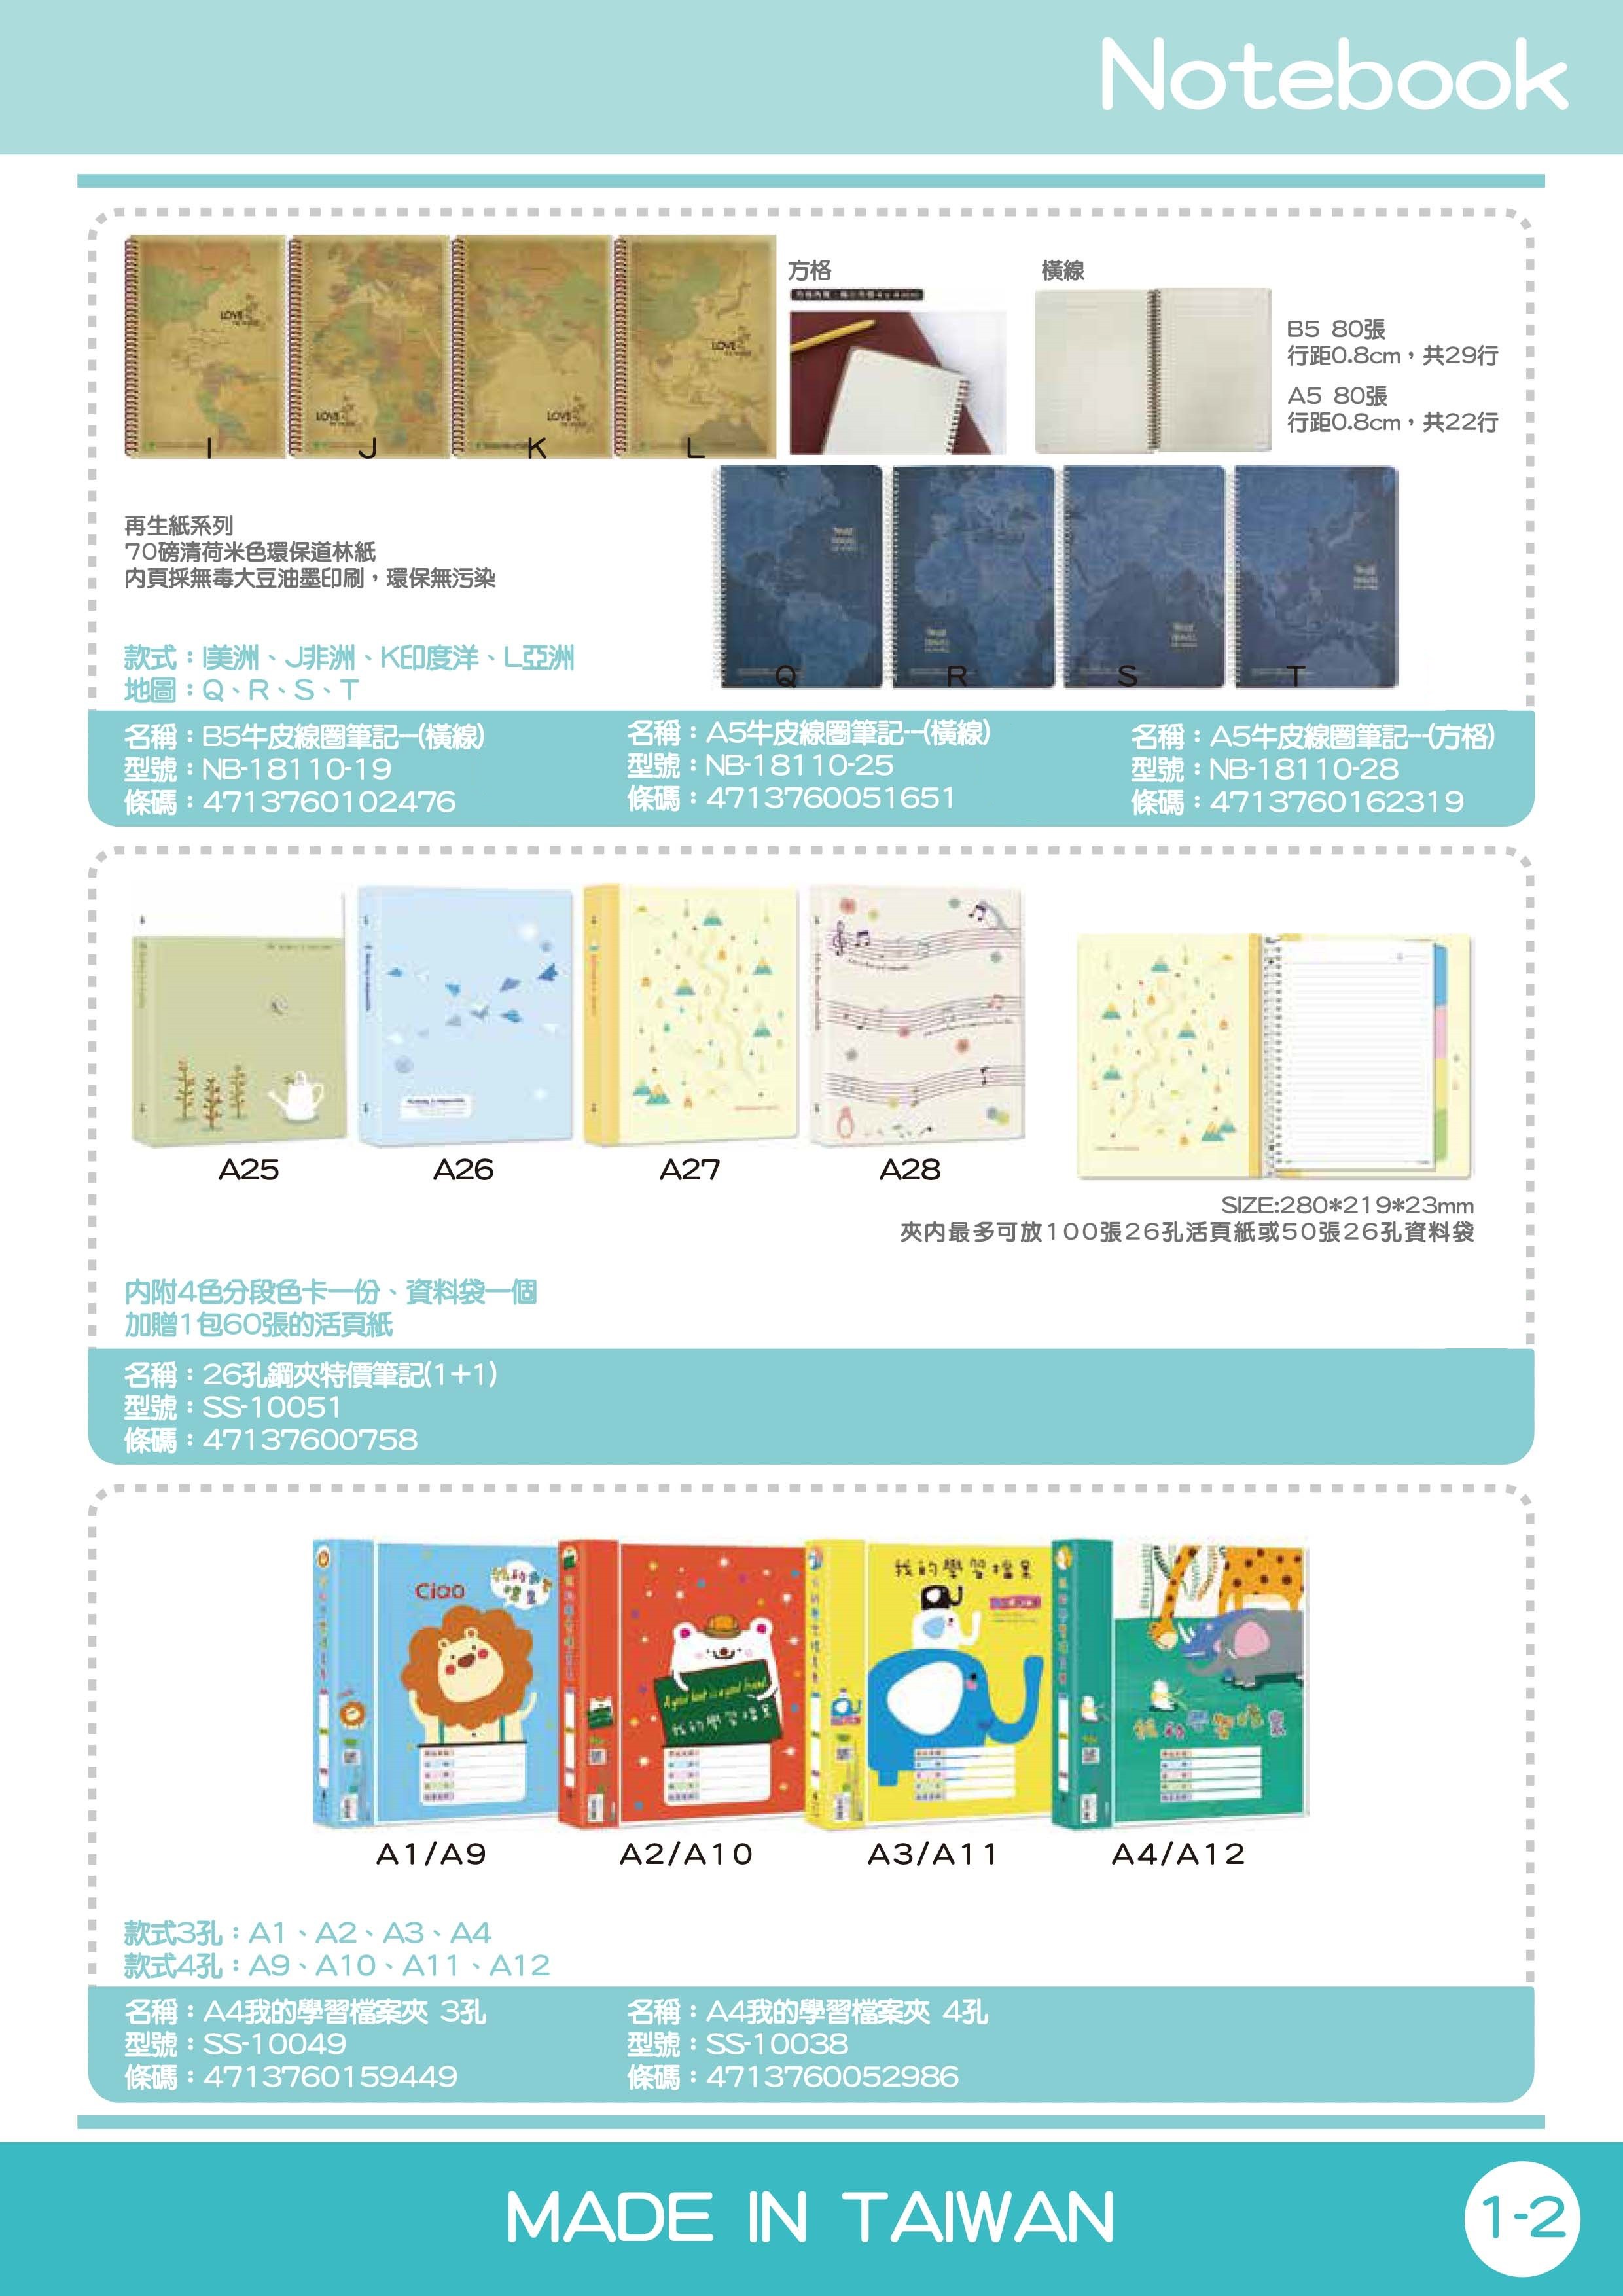 stationery-notebook-si-12.jpg